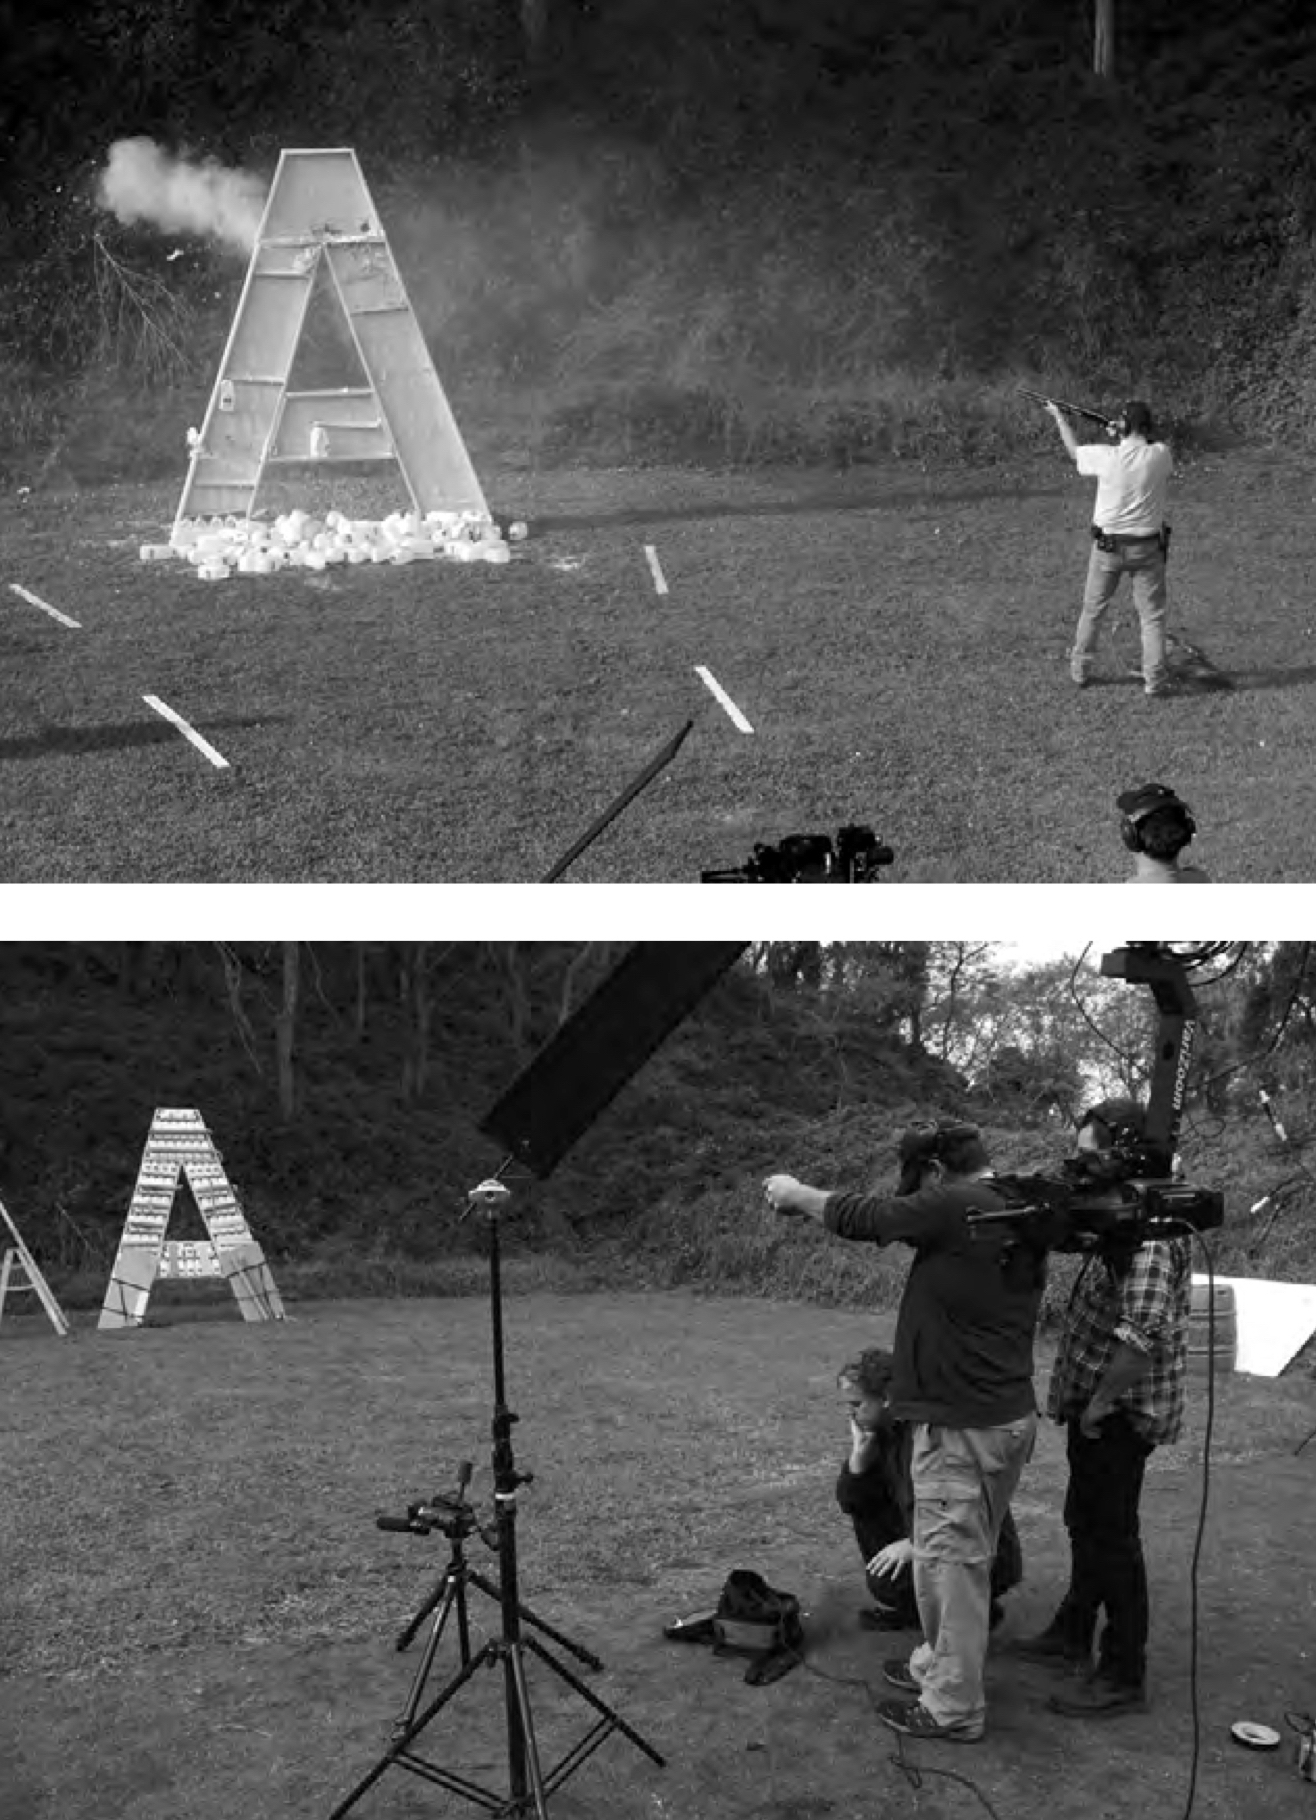 Production images of the letter A in Destroyed Word, lmed at an undisclosed location in New Zealand. Photos by Bruce E. Phillips.